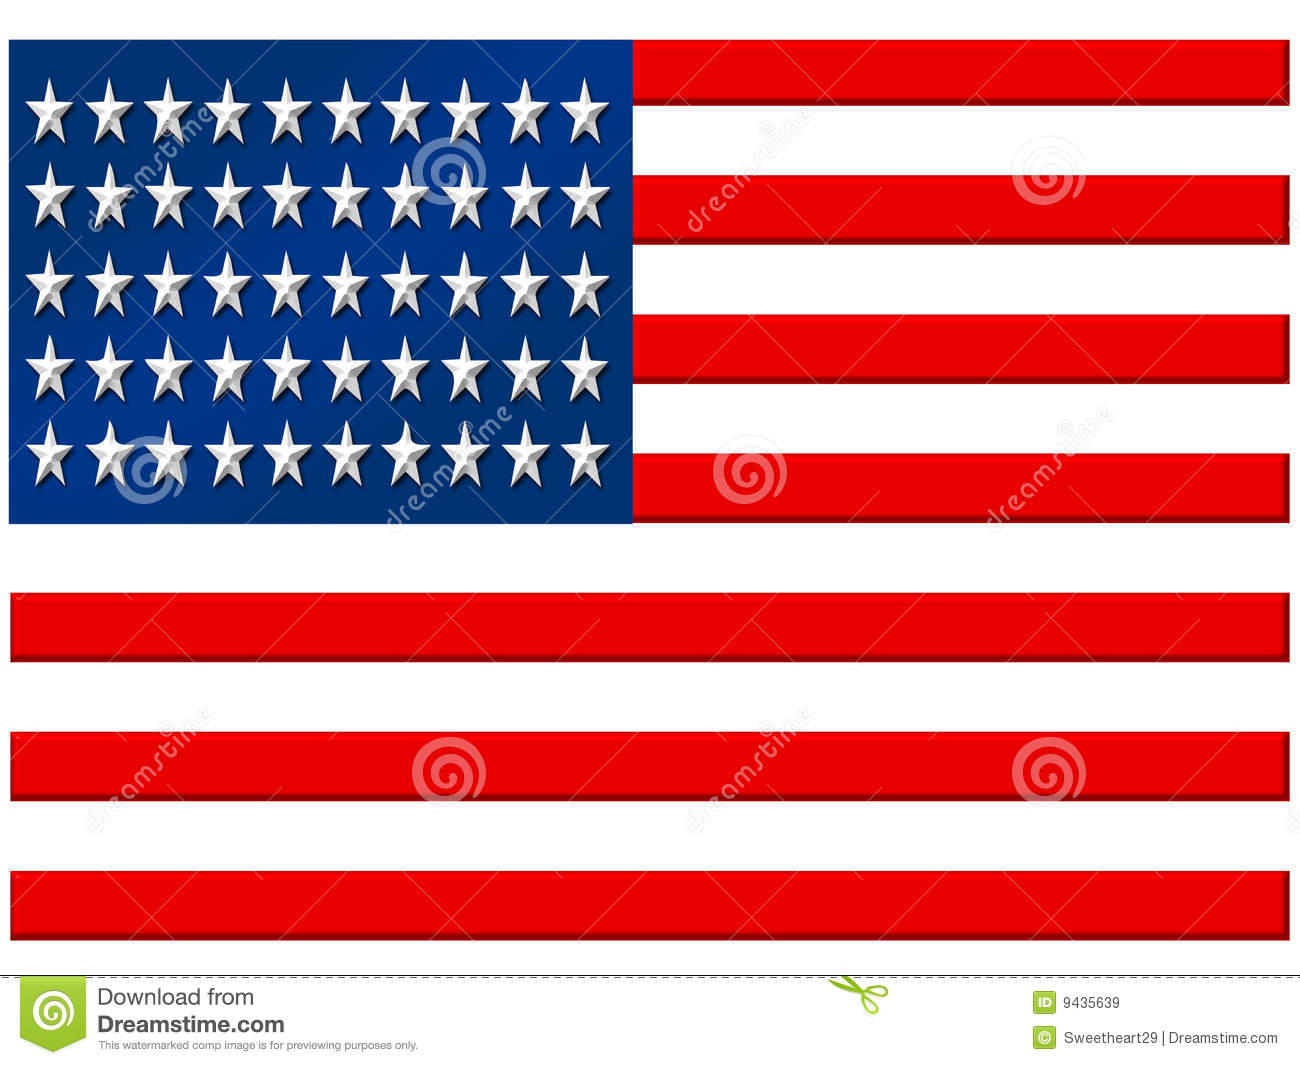 USA Flag Royalty Free Stock Images - Image: 9435639